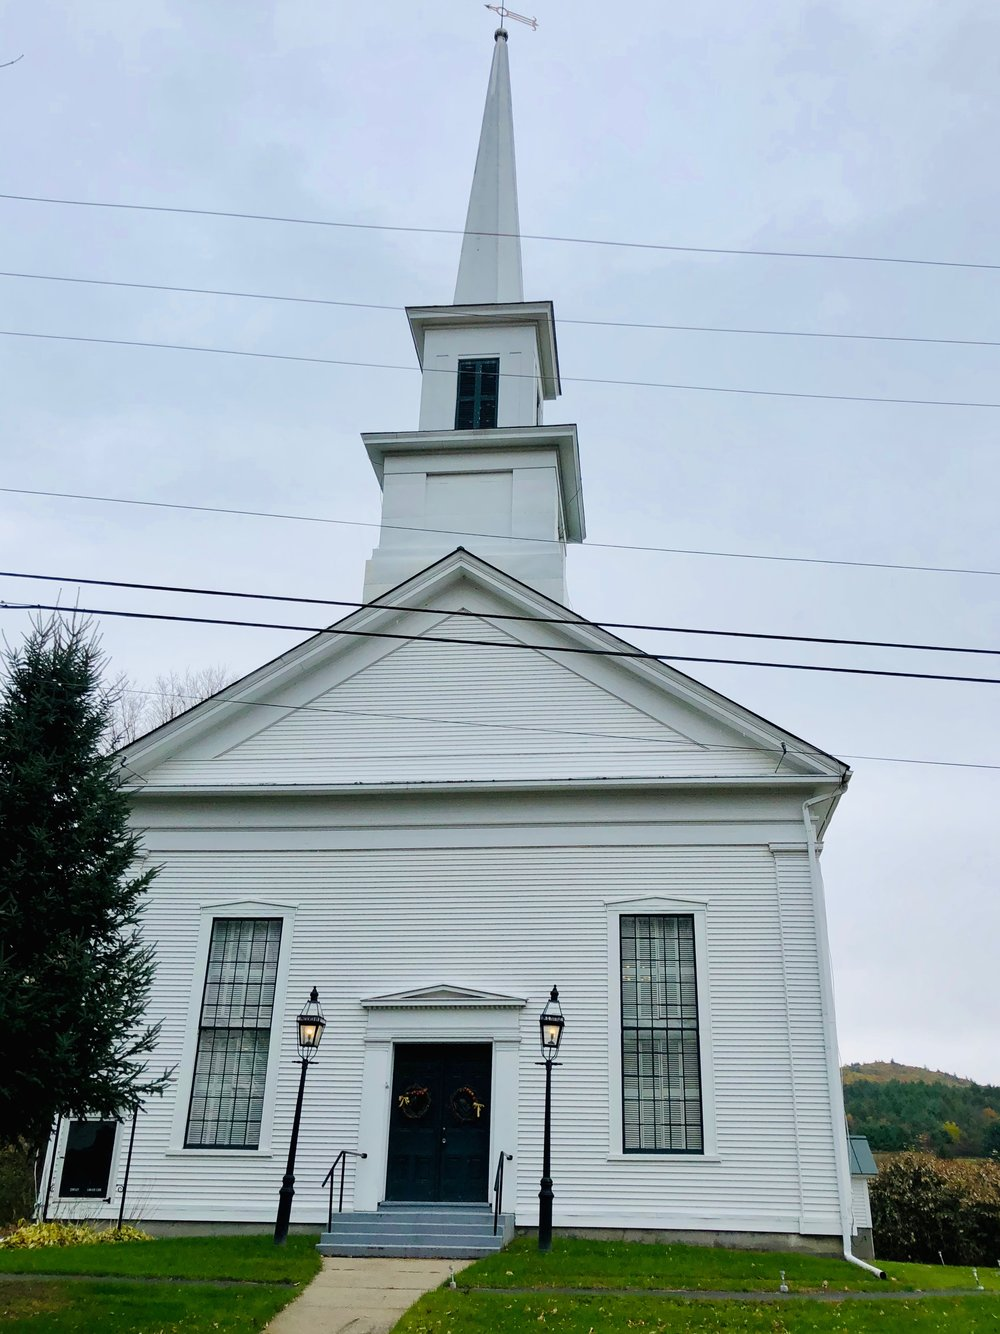 this is an old Congregationalist church that is now owned by the town, i was able to practice here during the day between concerts